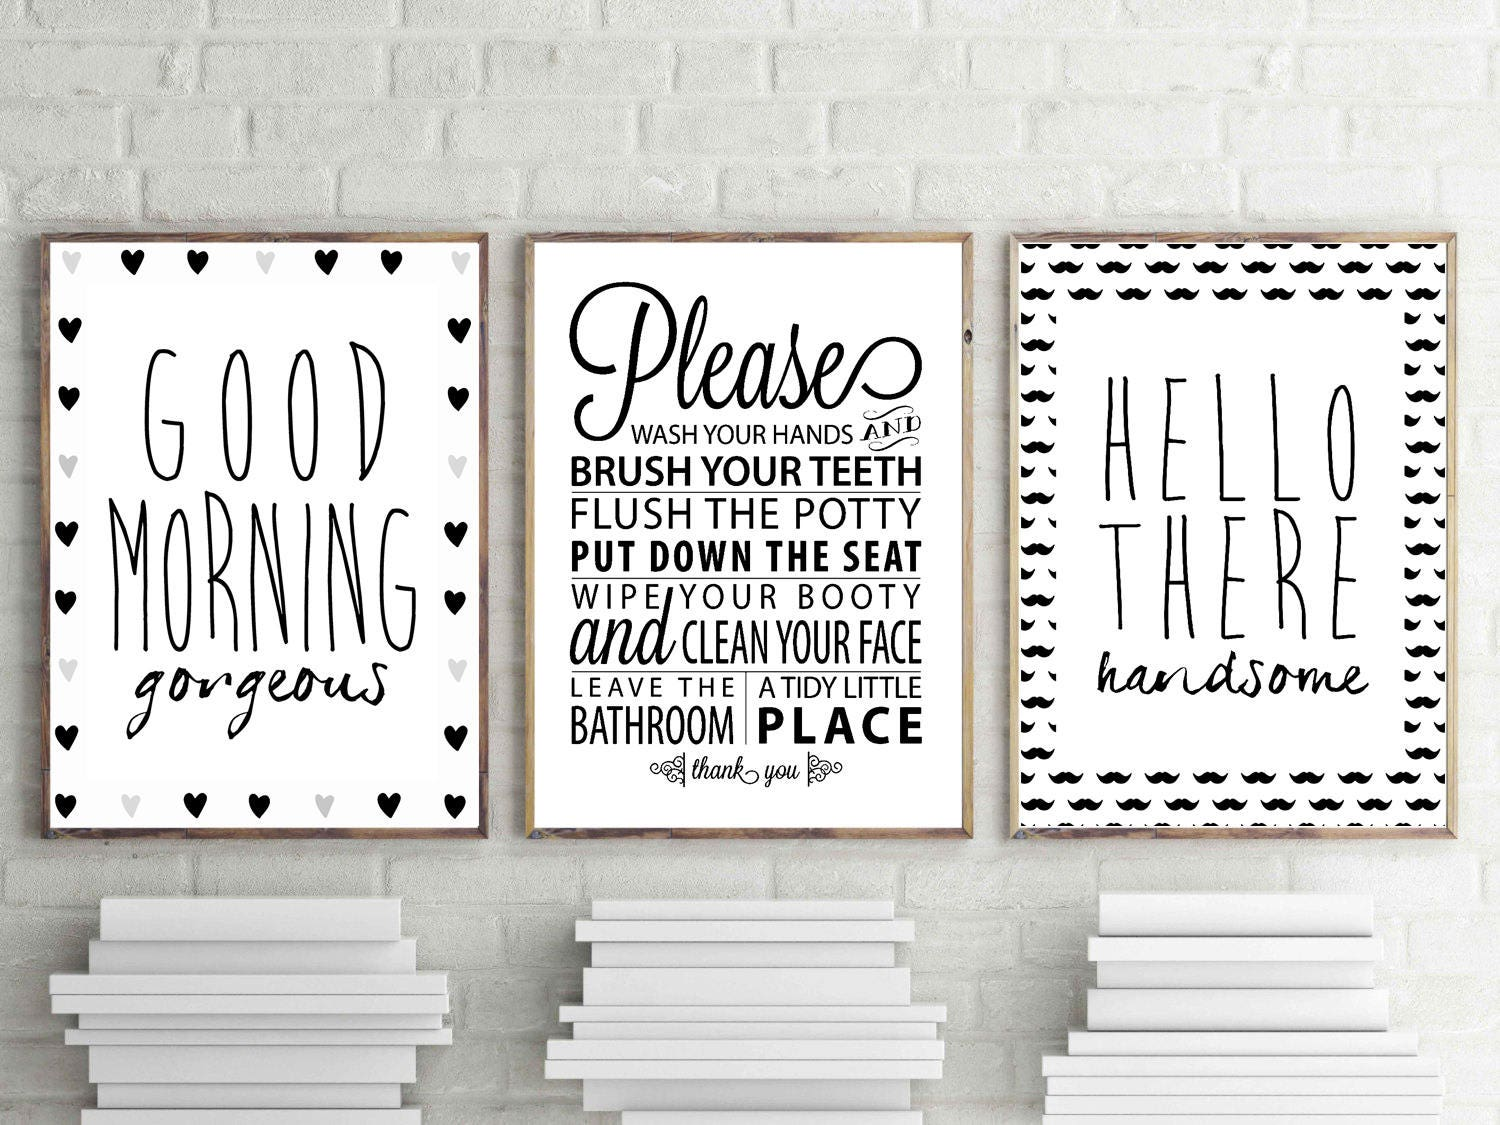 Bathroom Wall Art Goodmorning Gorgeous Print Hello